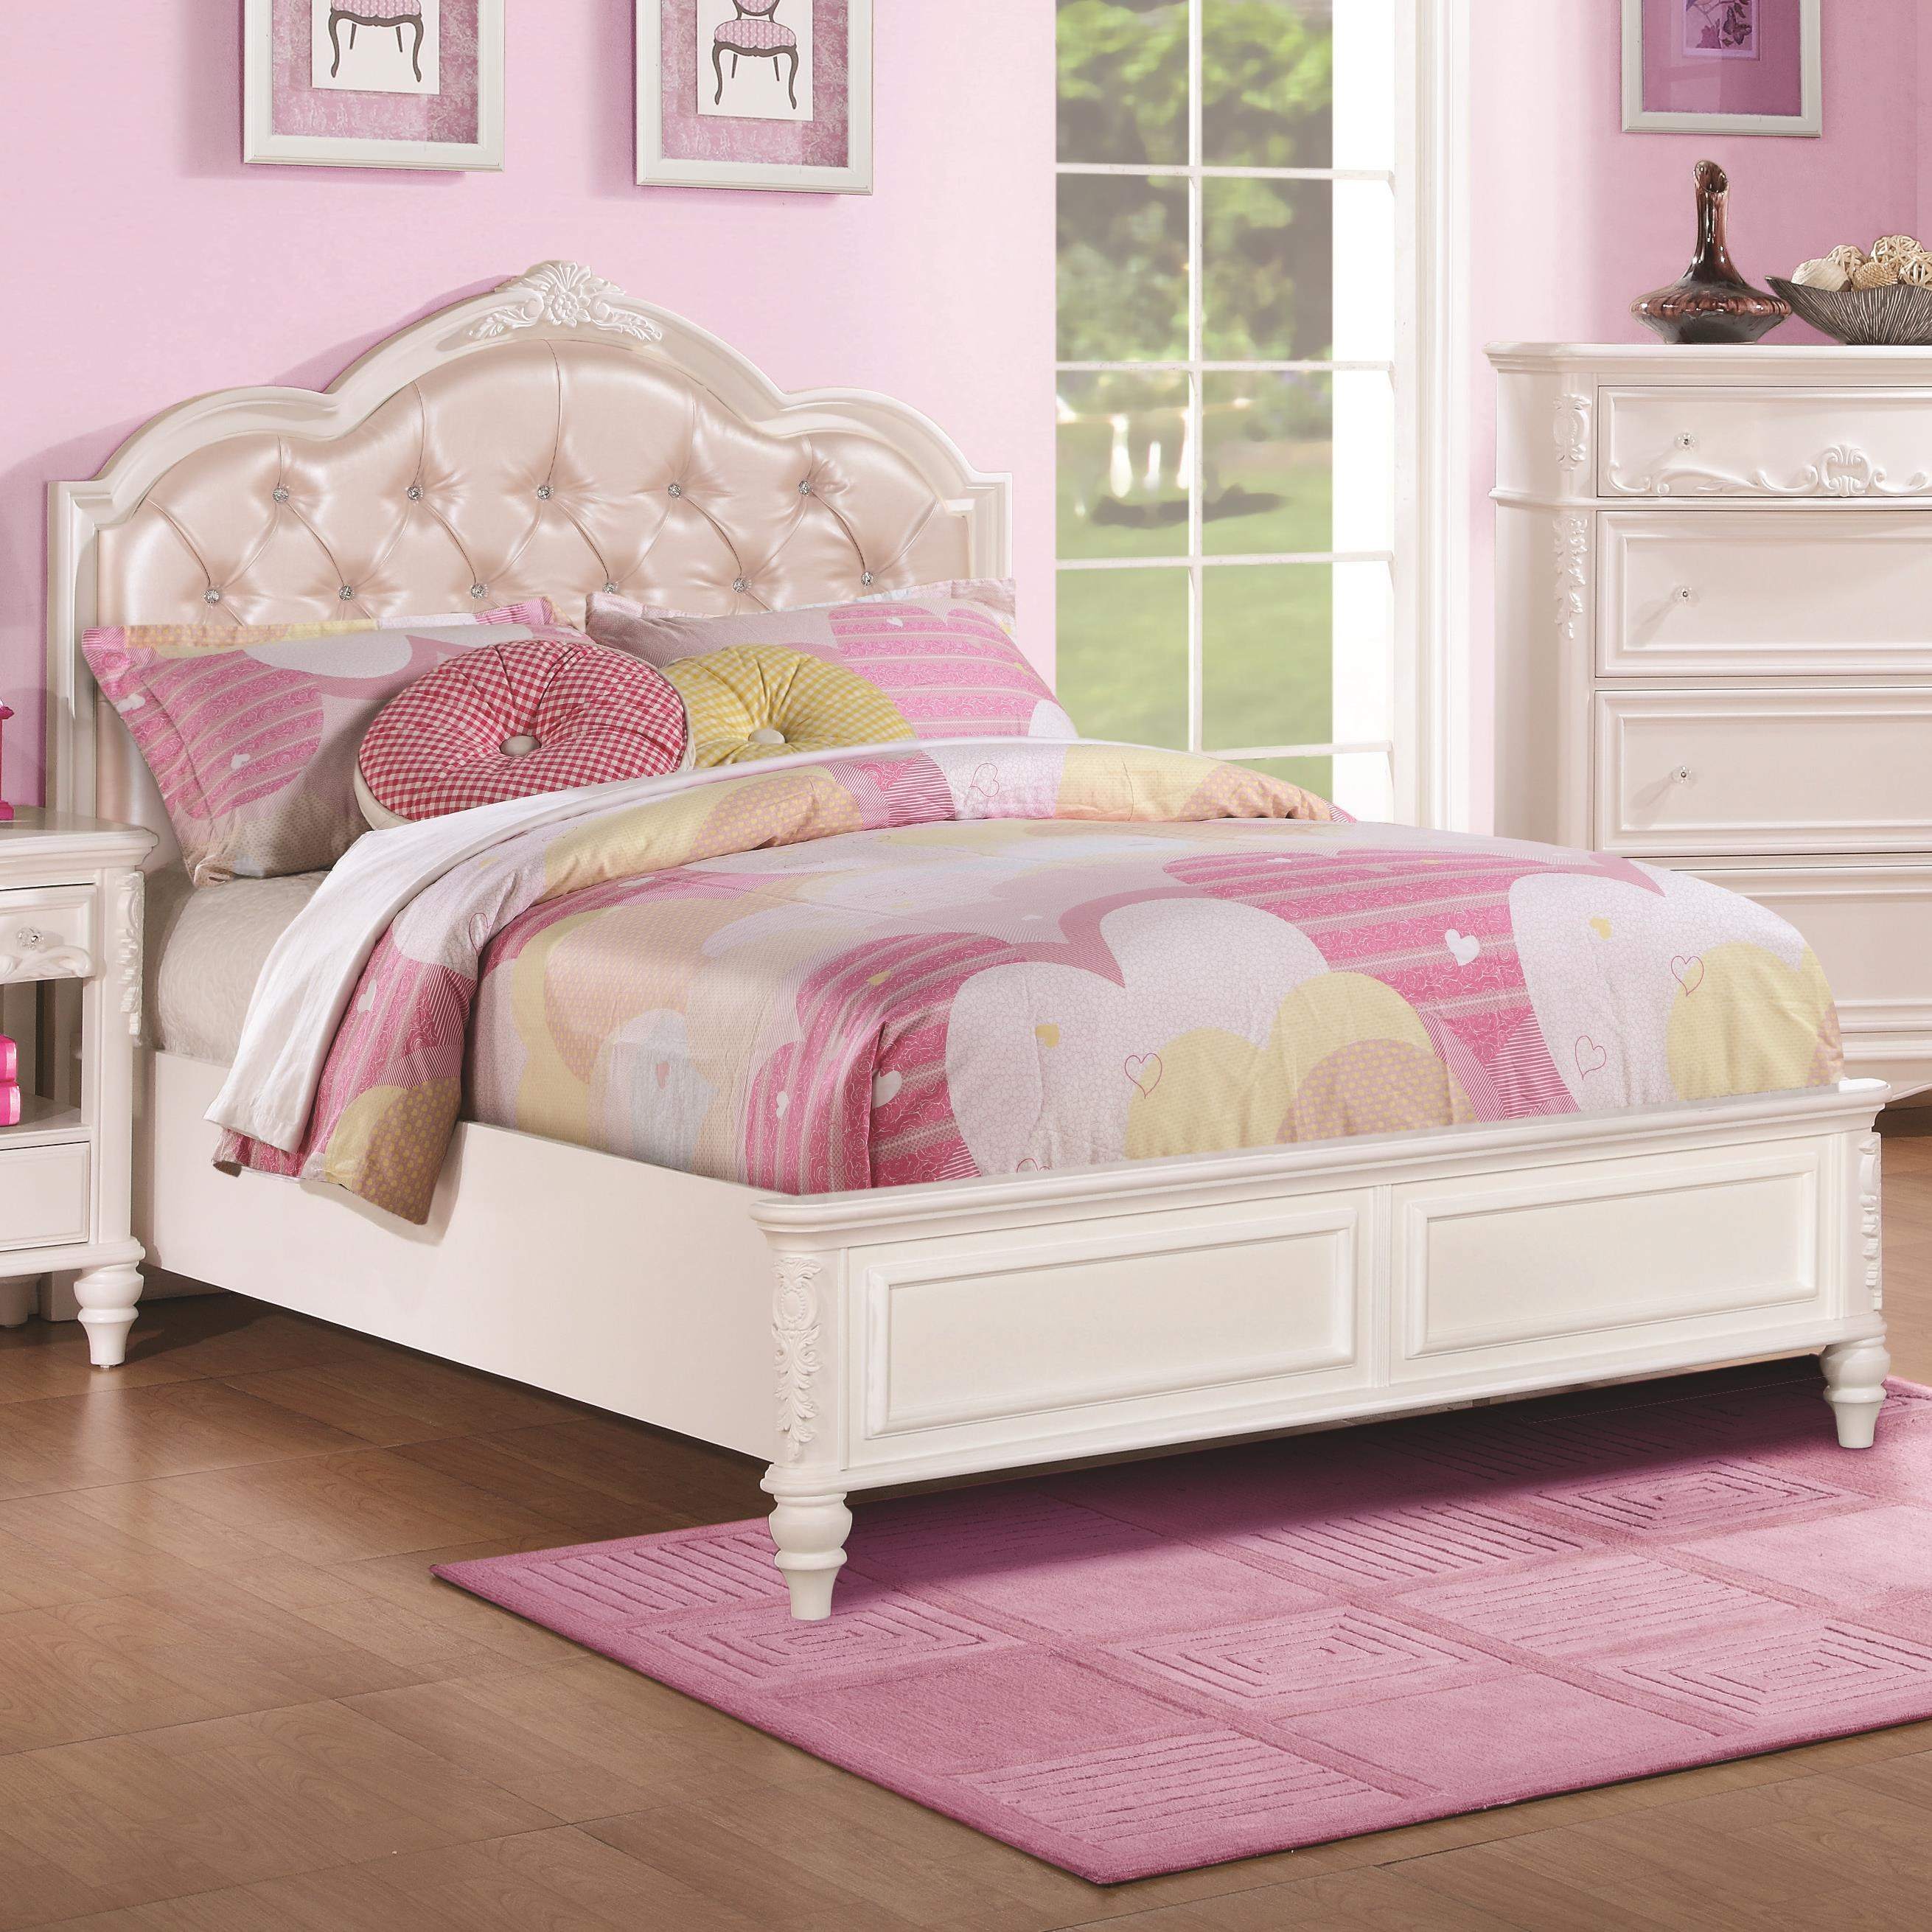 Twin Size Bed and Diamond Tufted Headboard